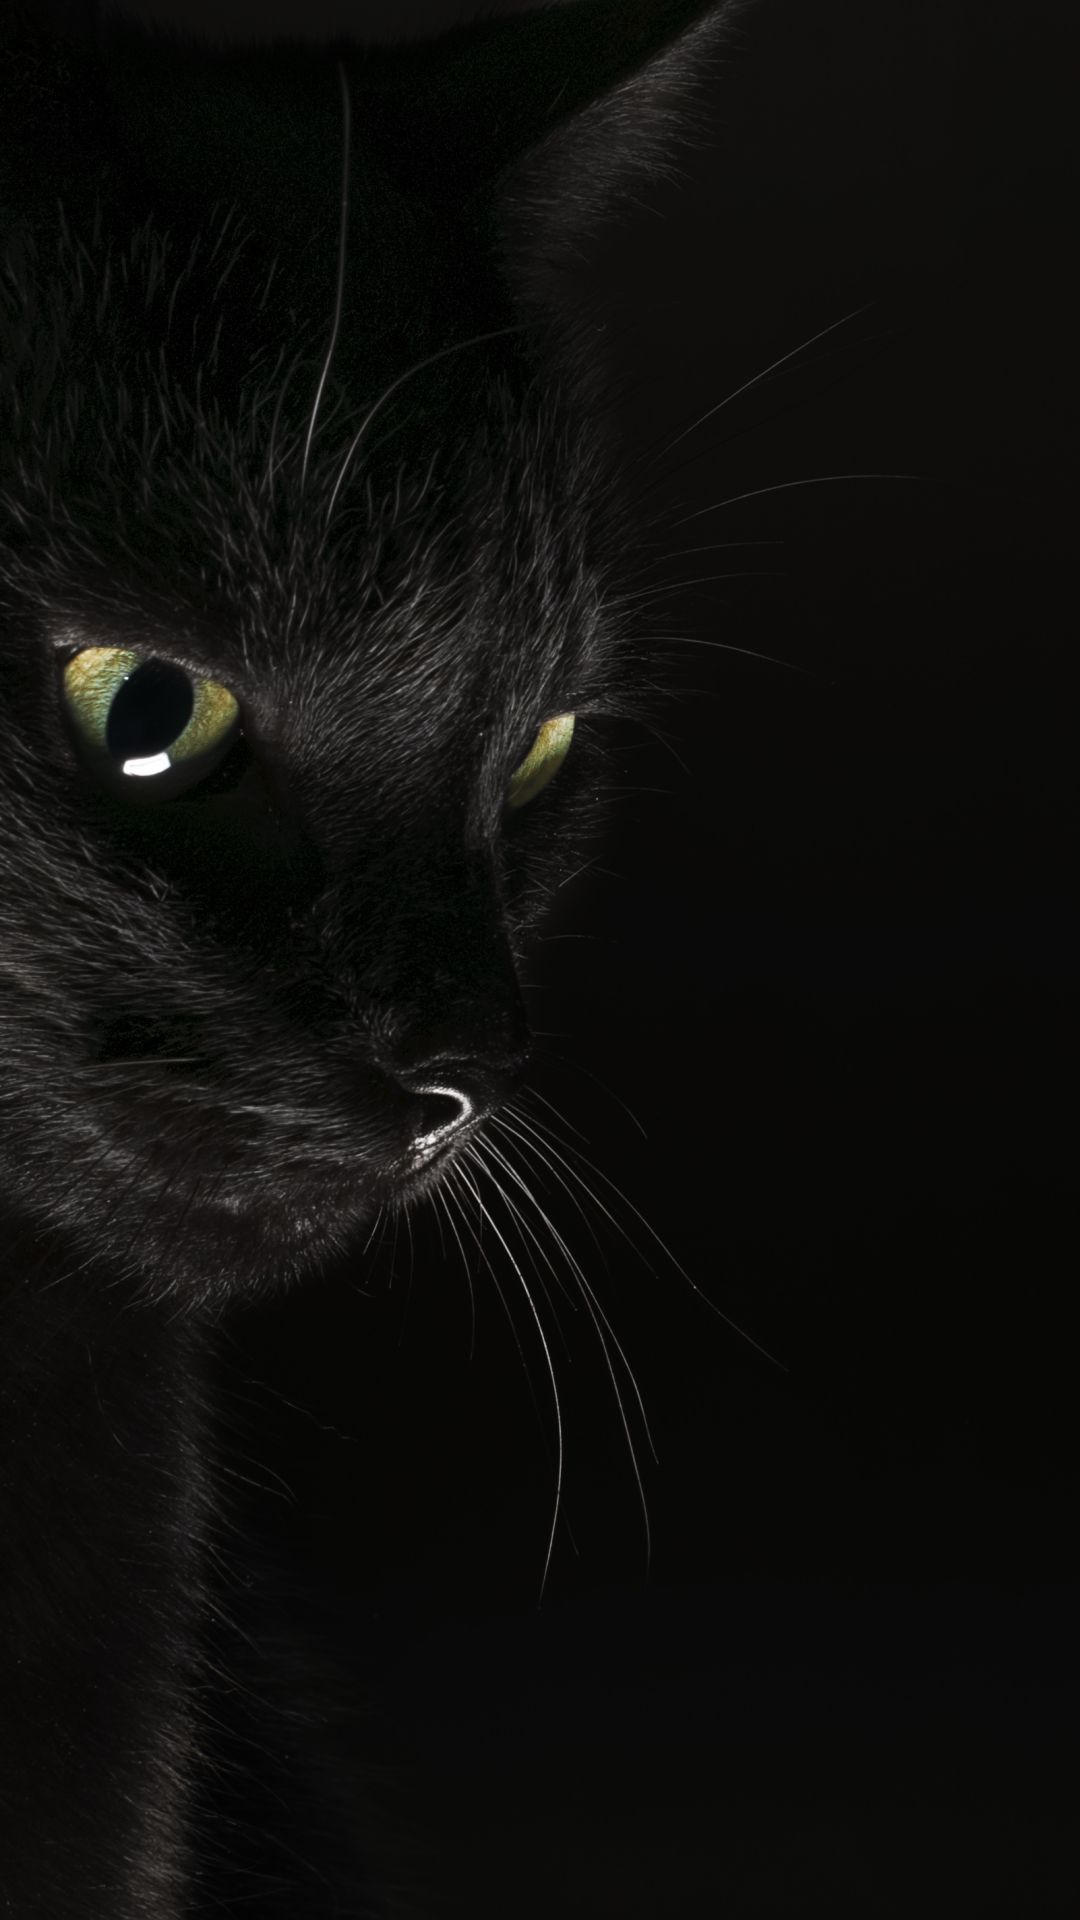 50 Black Cat Android Iphone Desktop Hd Backgrounds Wallpapers 1080p 4k 1080x1920 2020